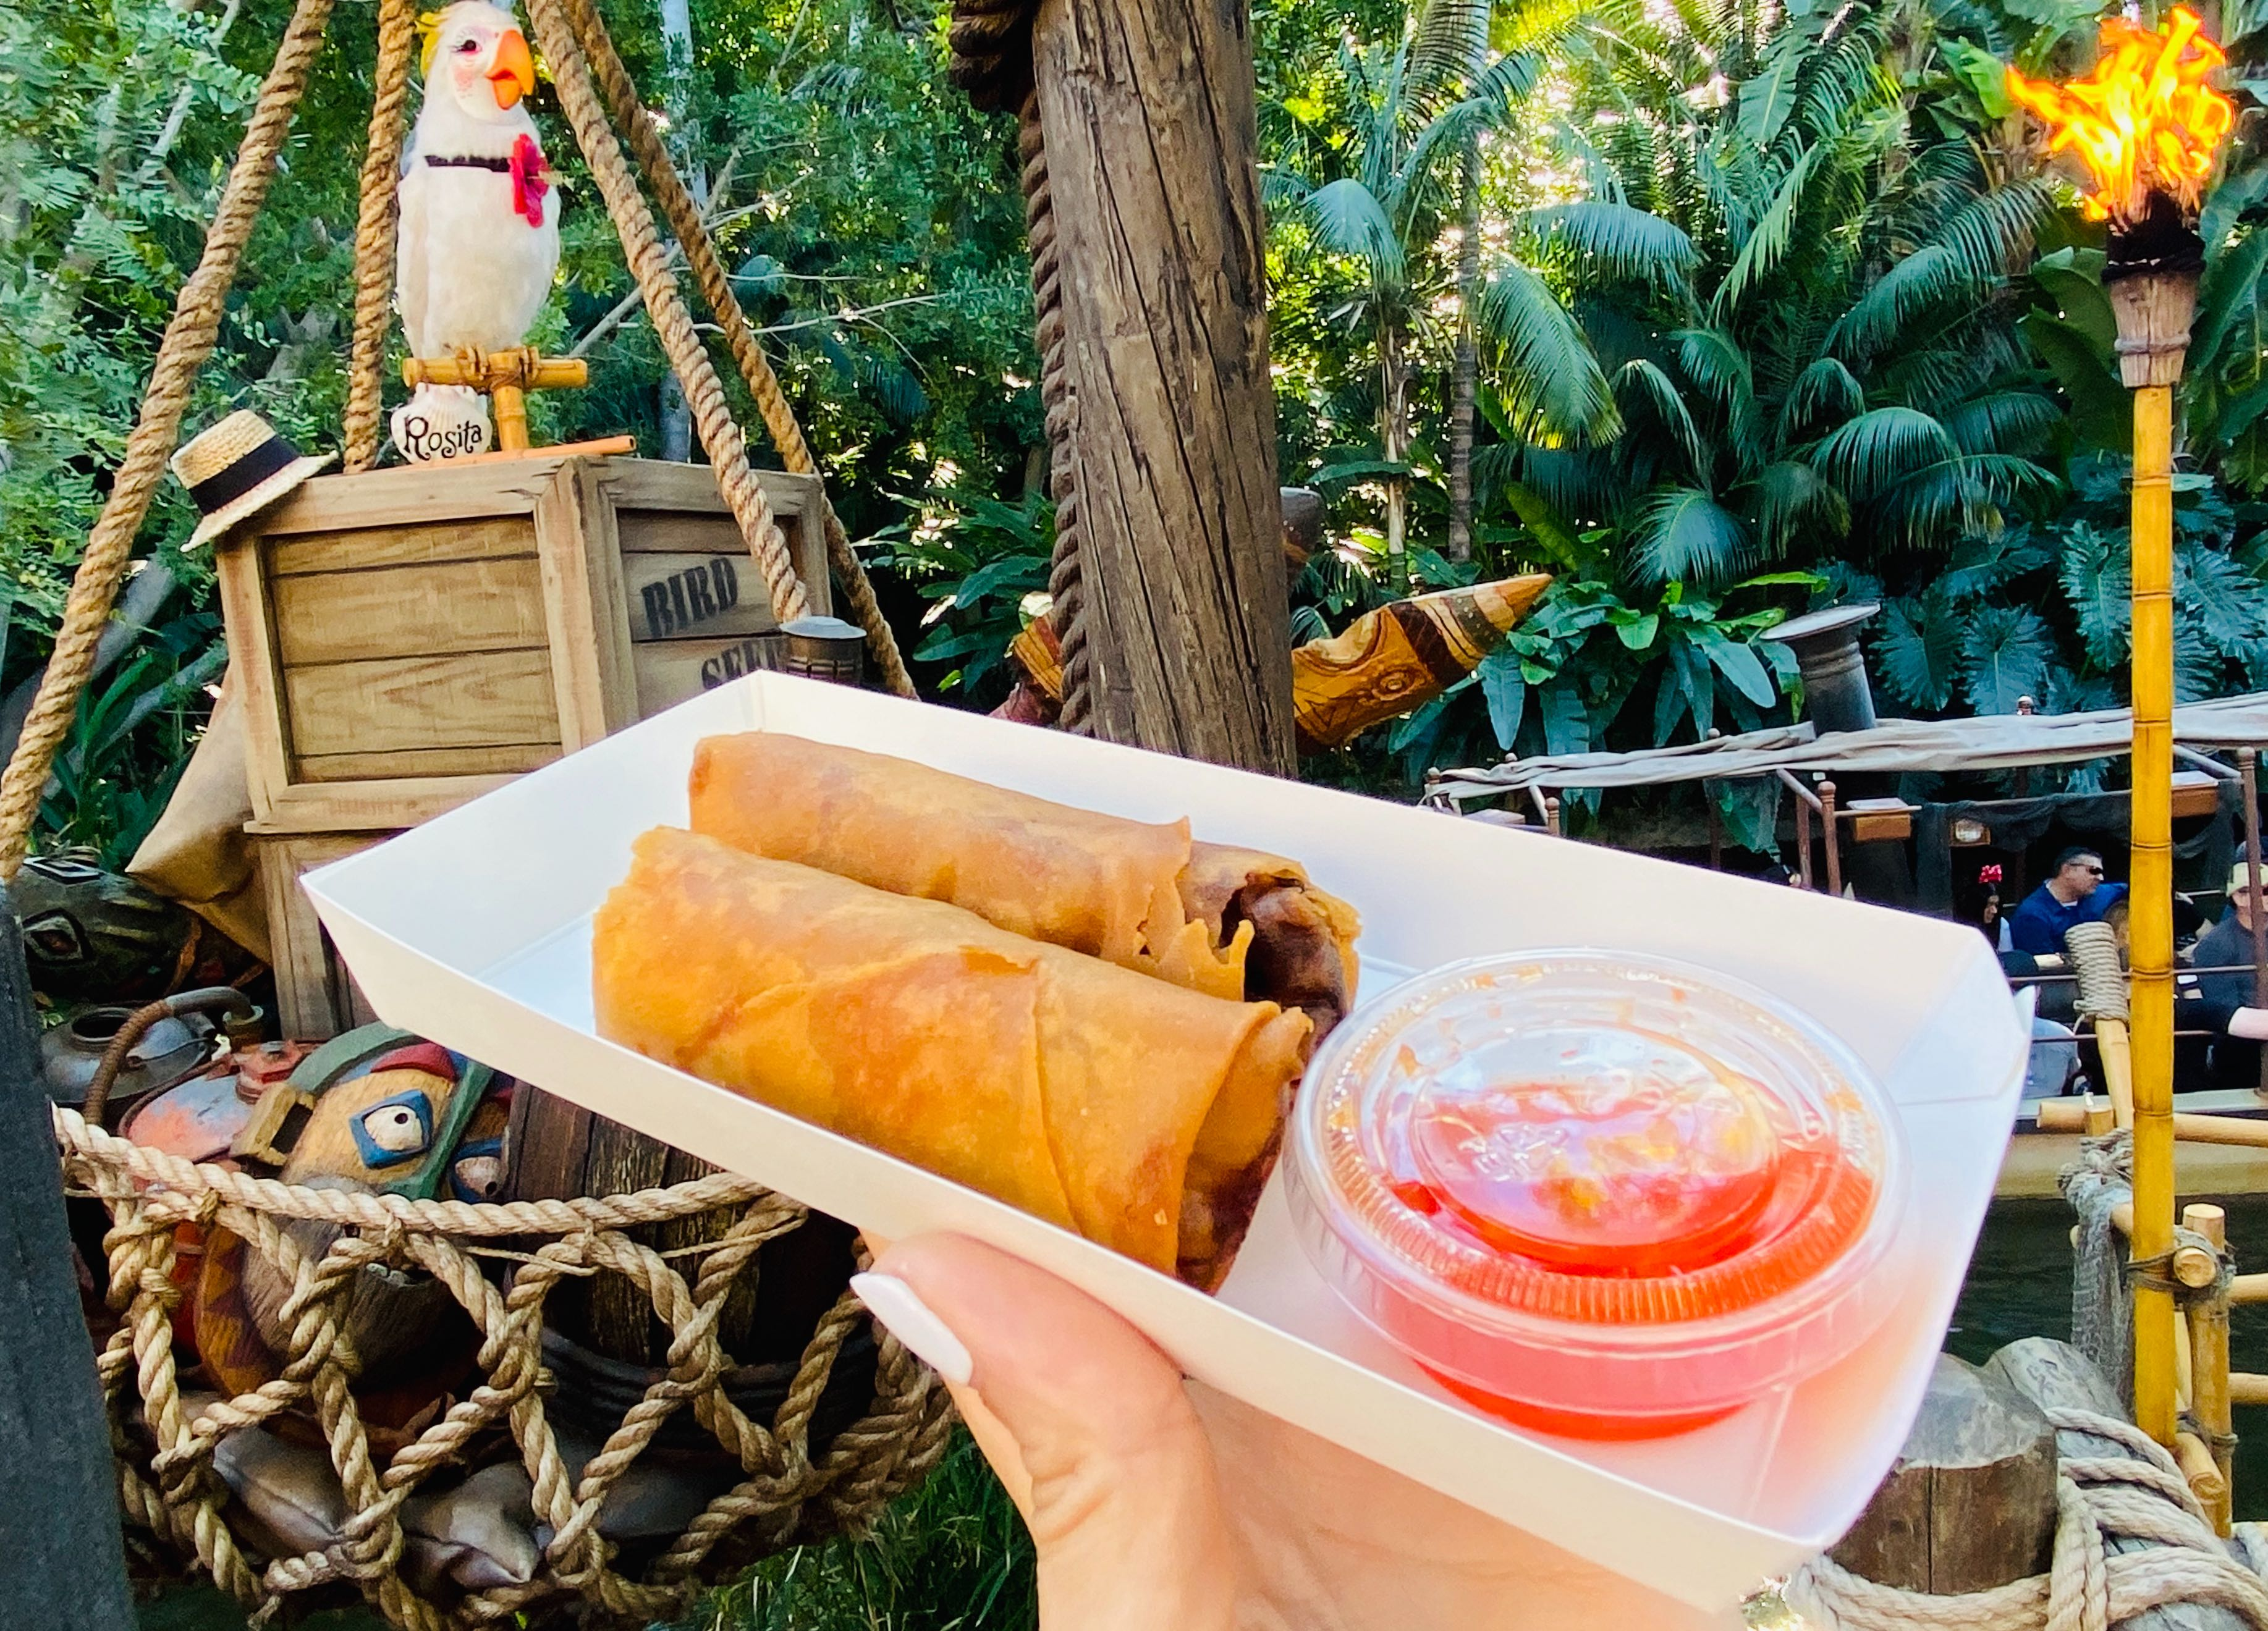 pork-lumpia-disneyland-02-01-2020-cover.jpg